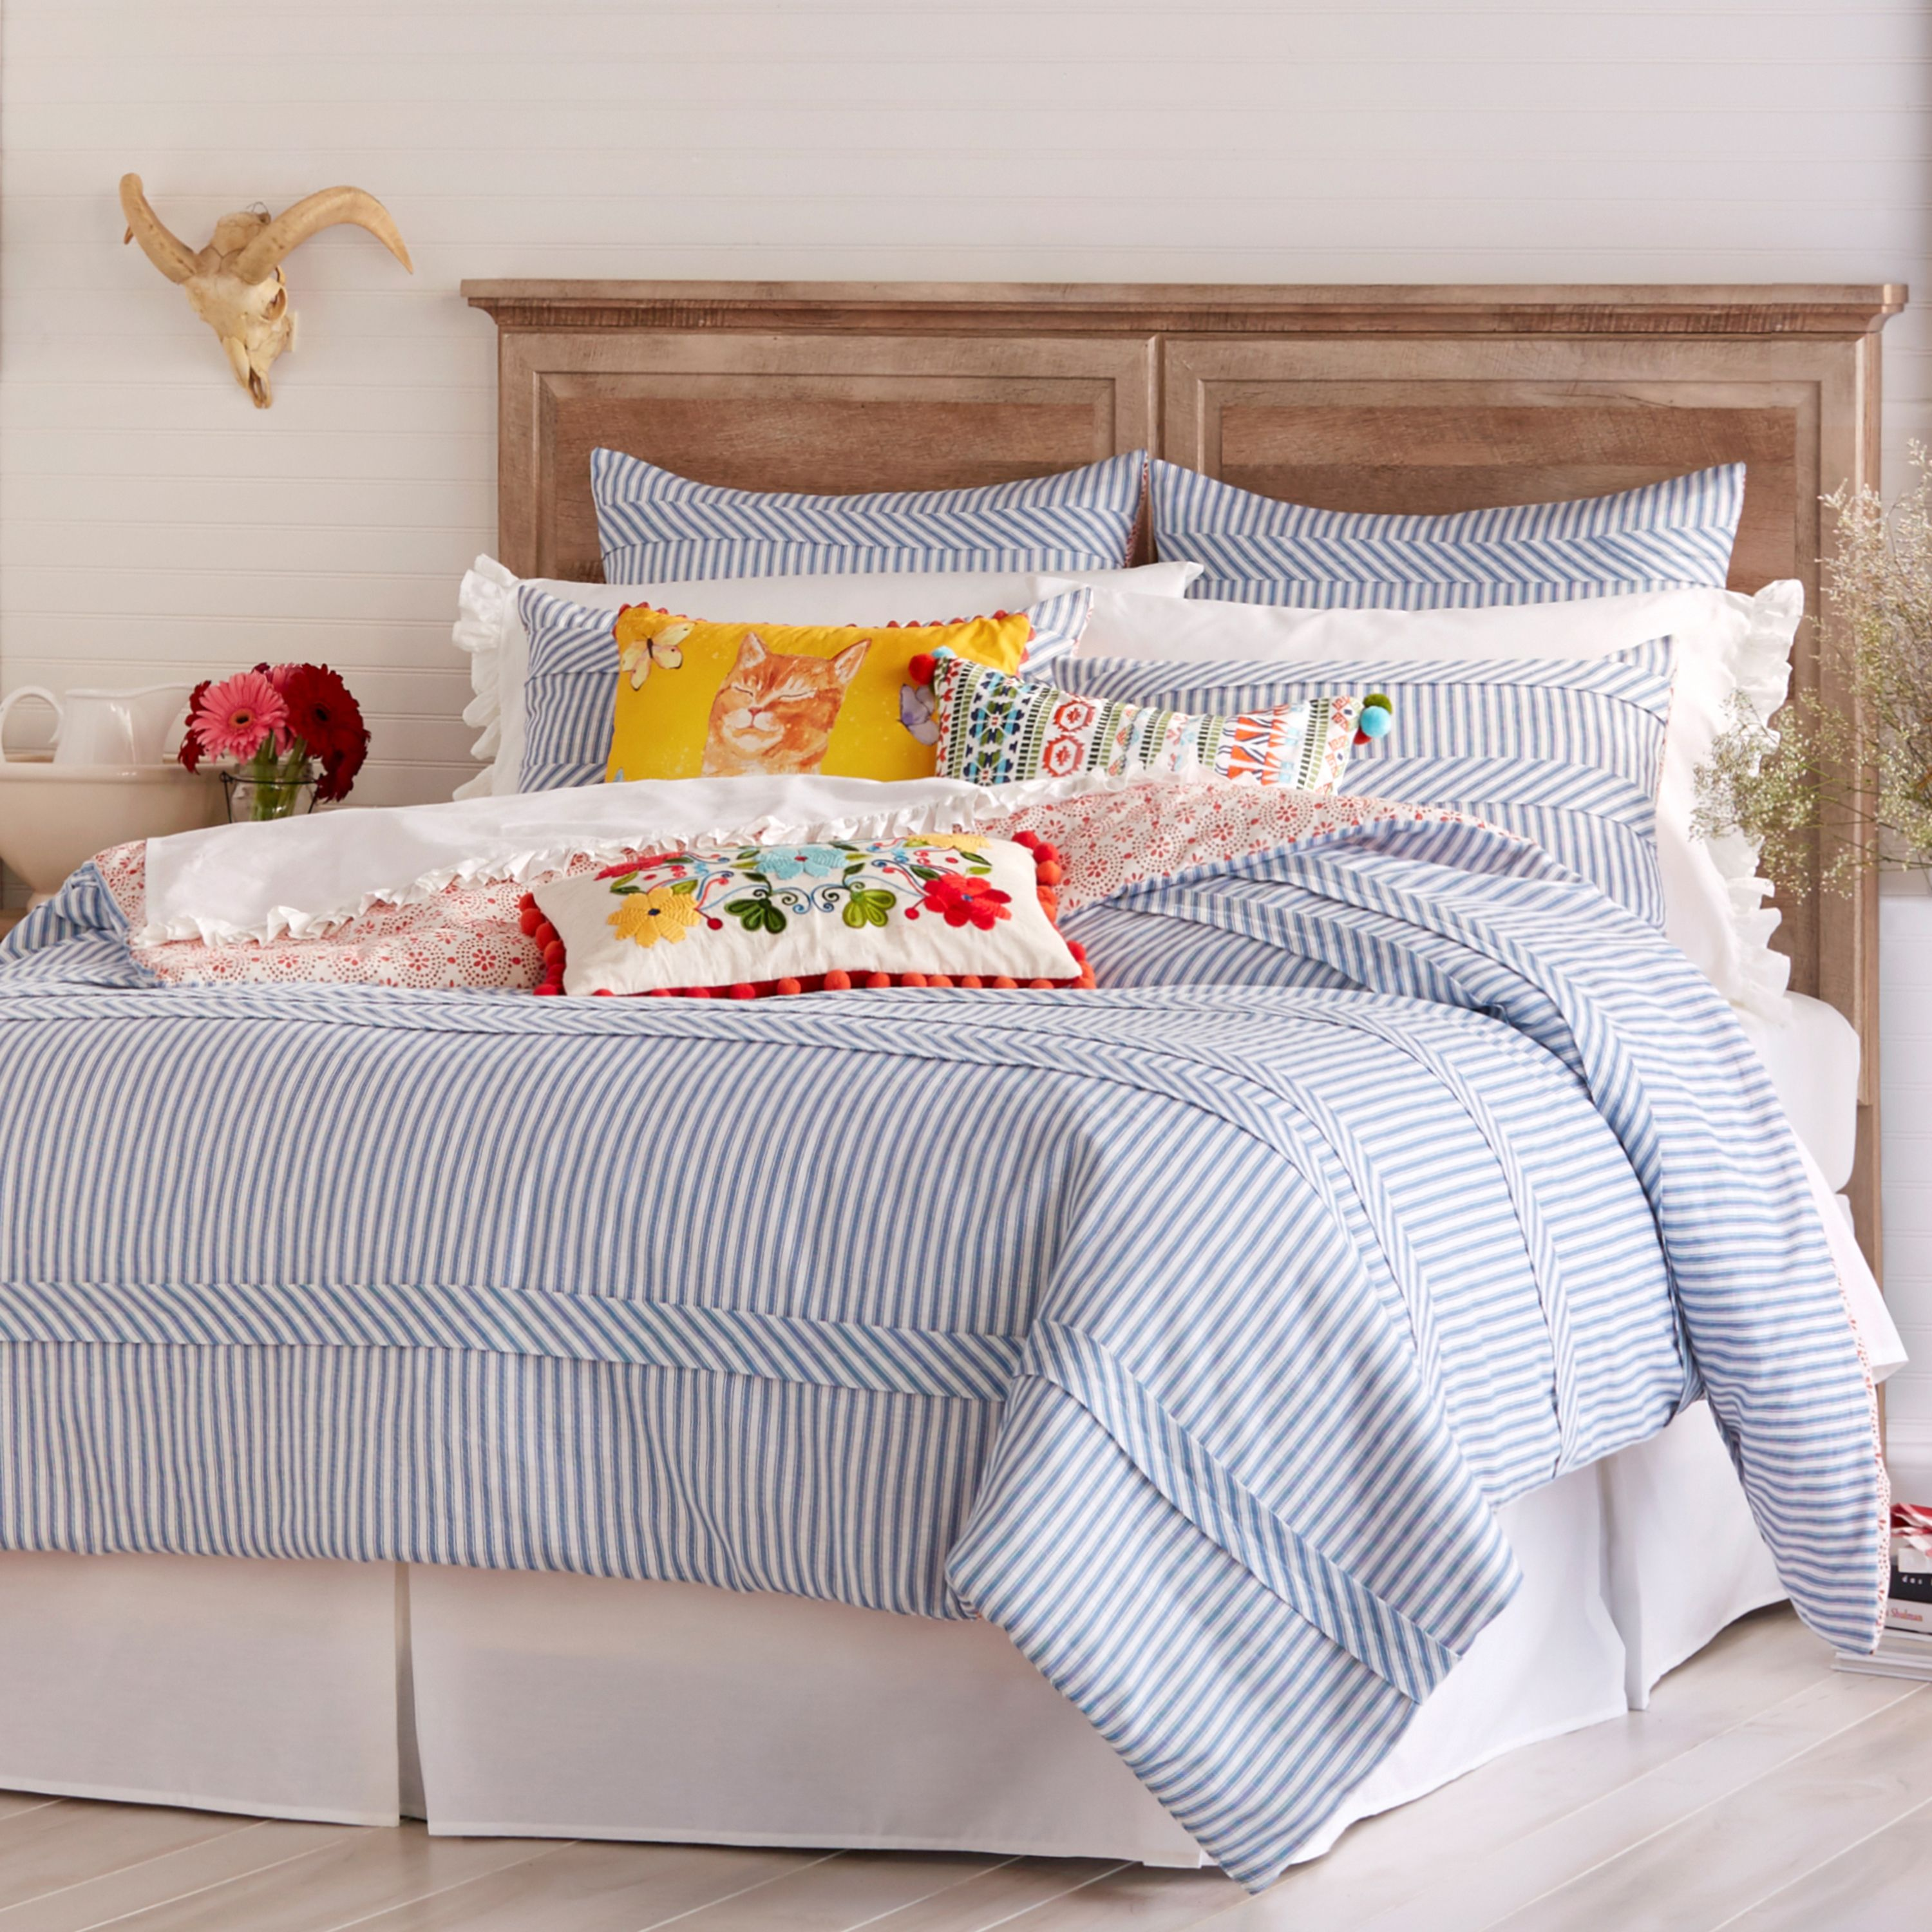 The Pioneer Woman Ticking Stripe Comforter (Full/Queen Size)